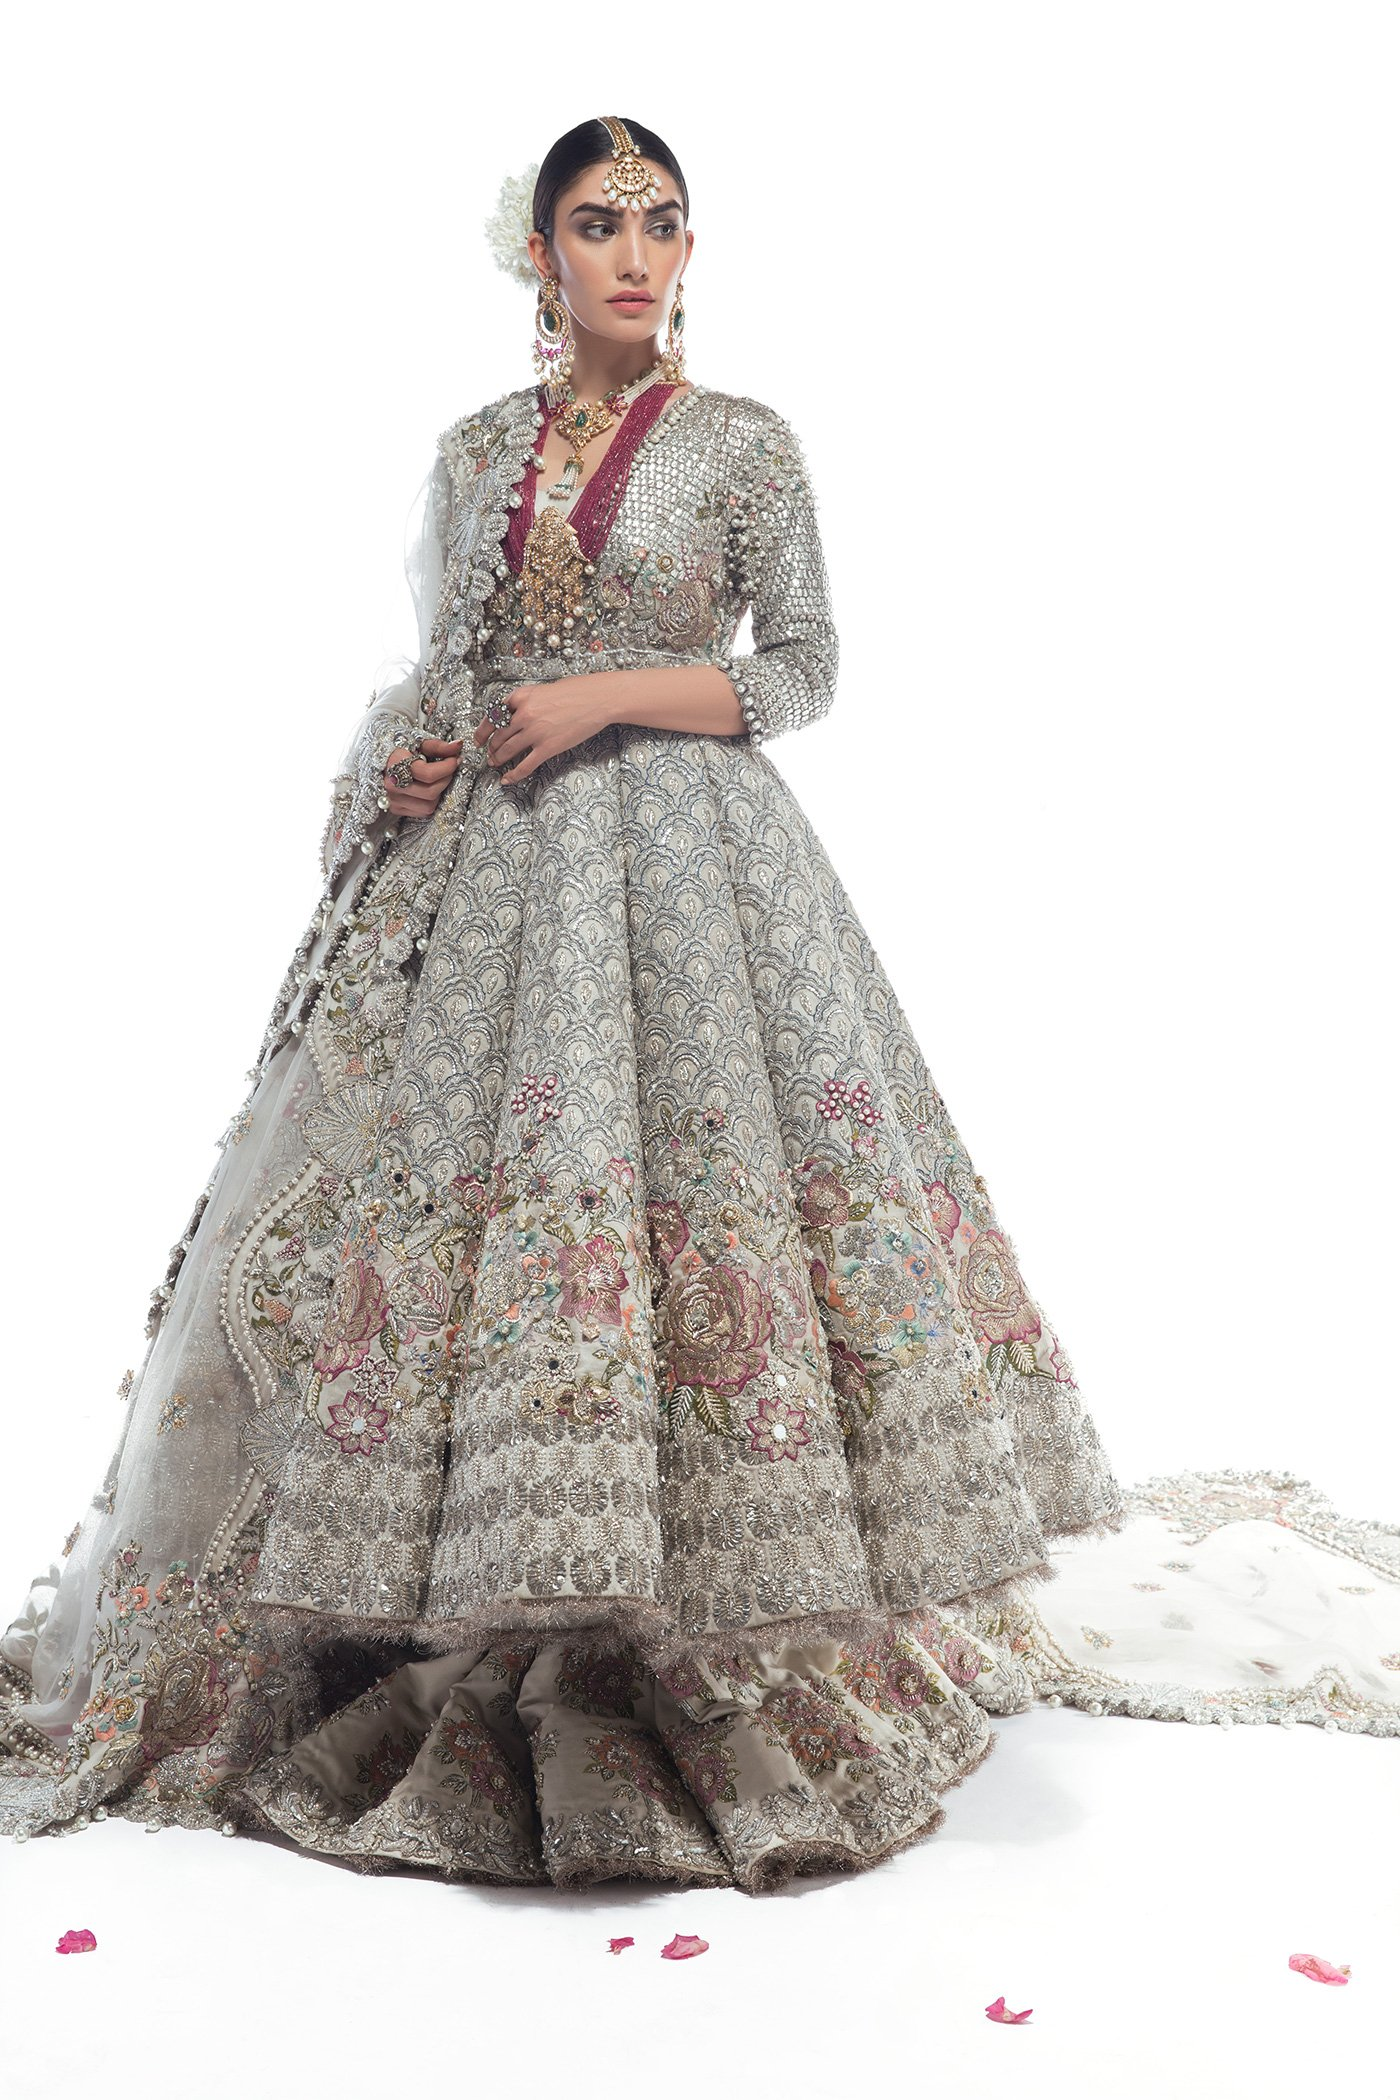 Latest Elan Bridal Dresses Collection 2020 With Prices On Sale,Dress Sandals For Beach Wedding